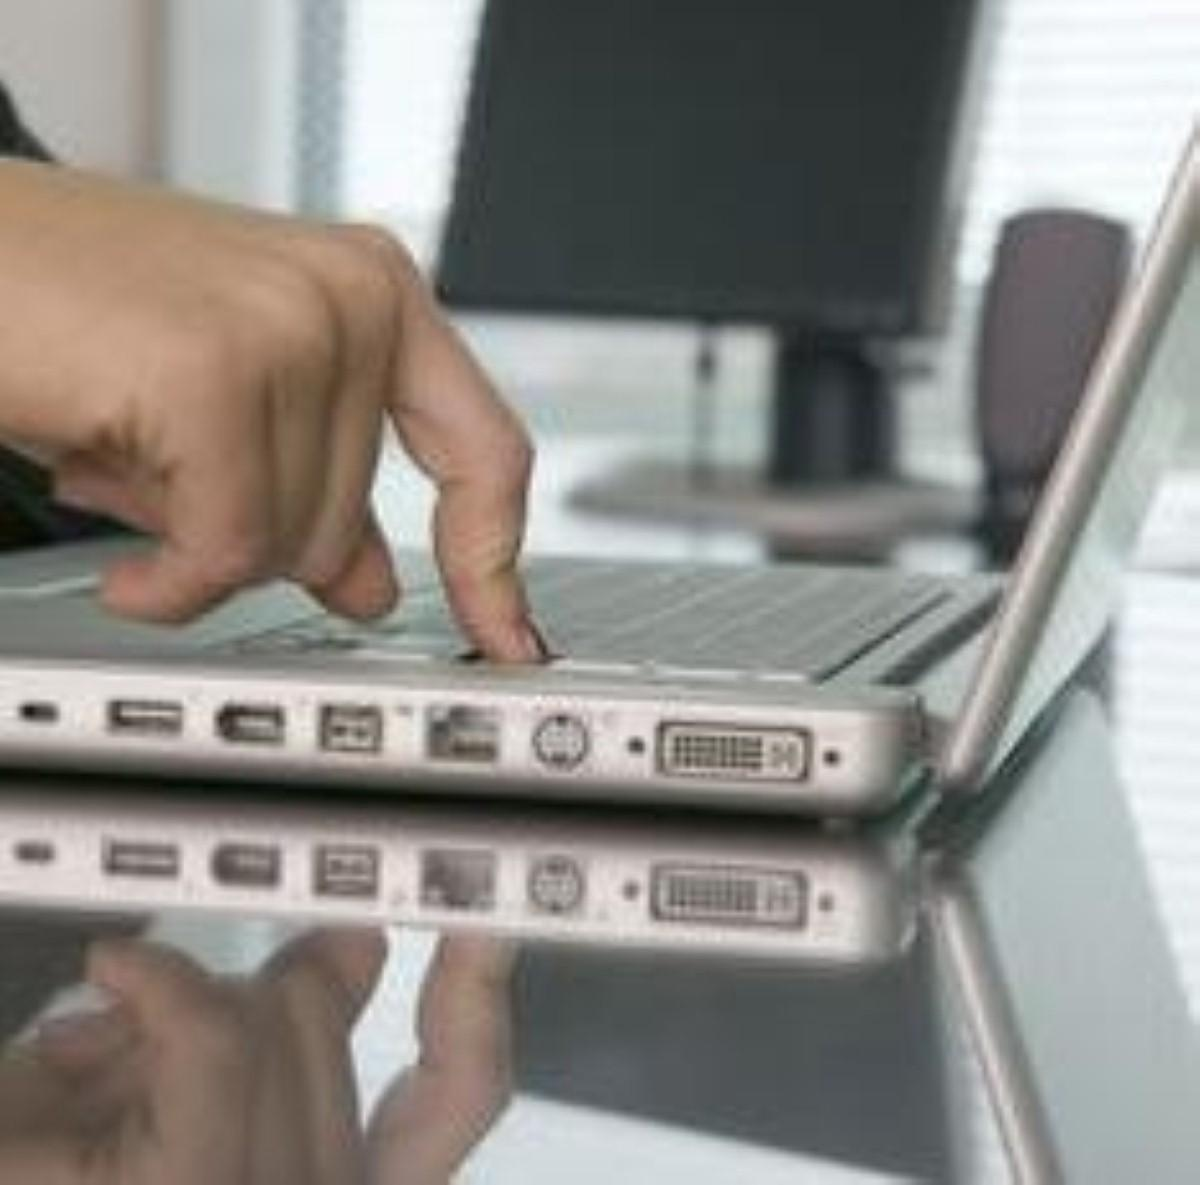 Online medical information 'not always accurate'